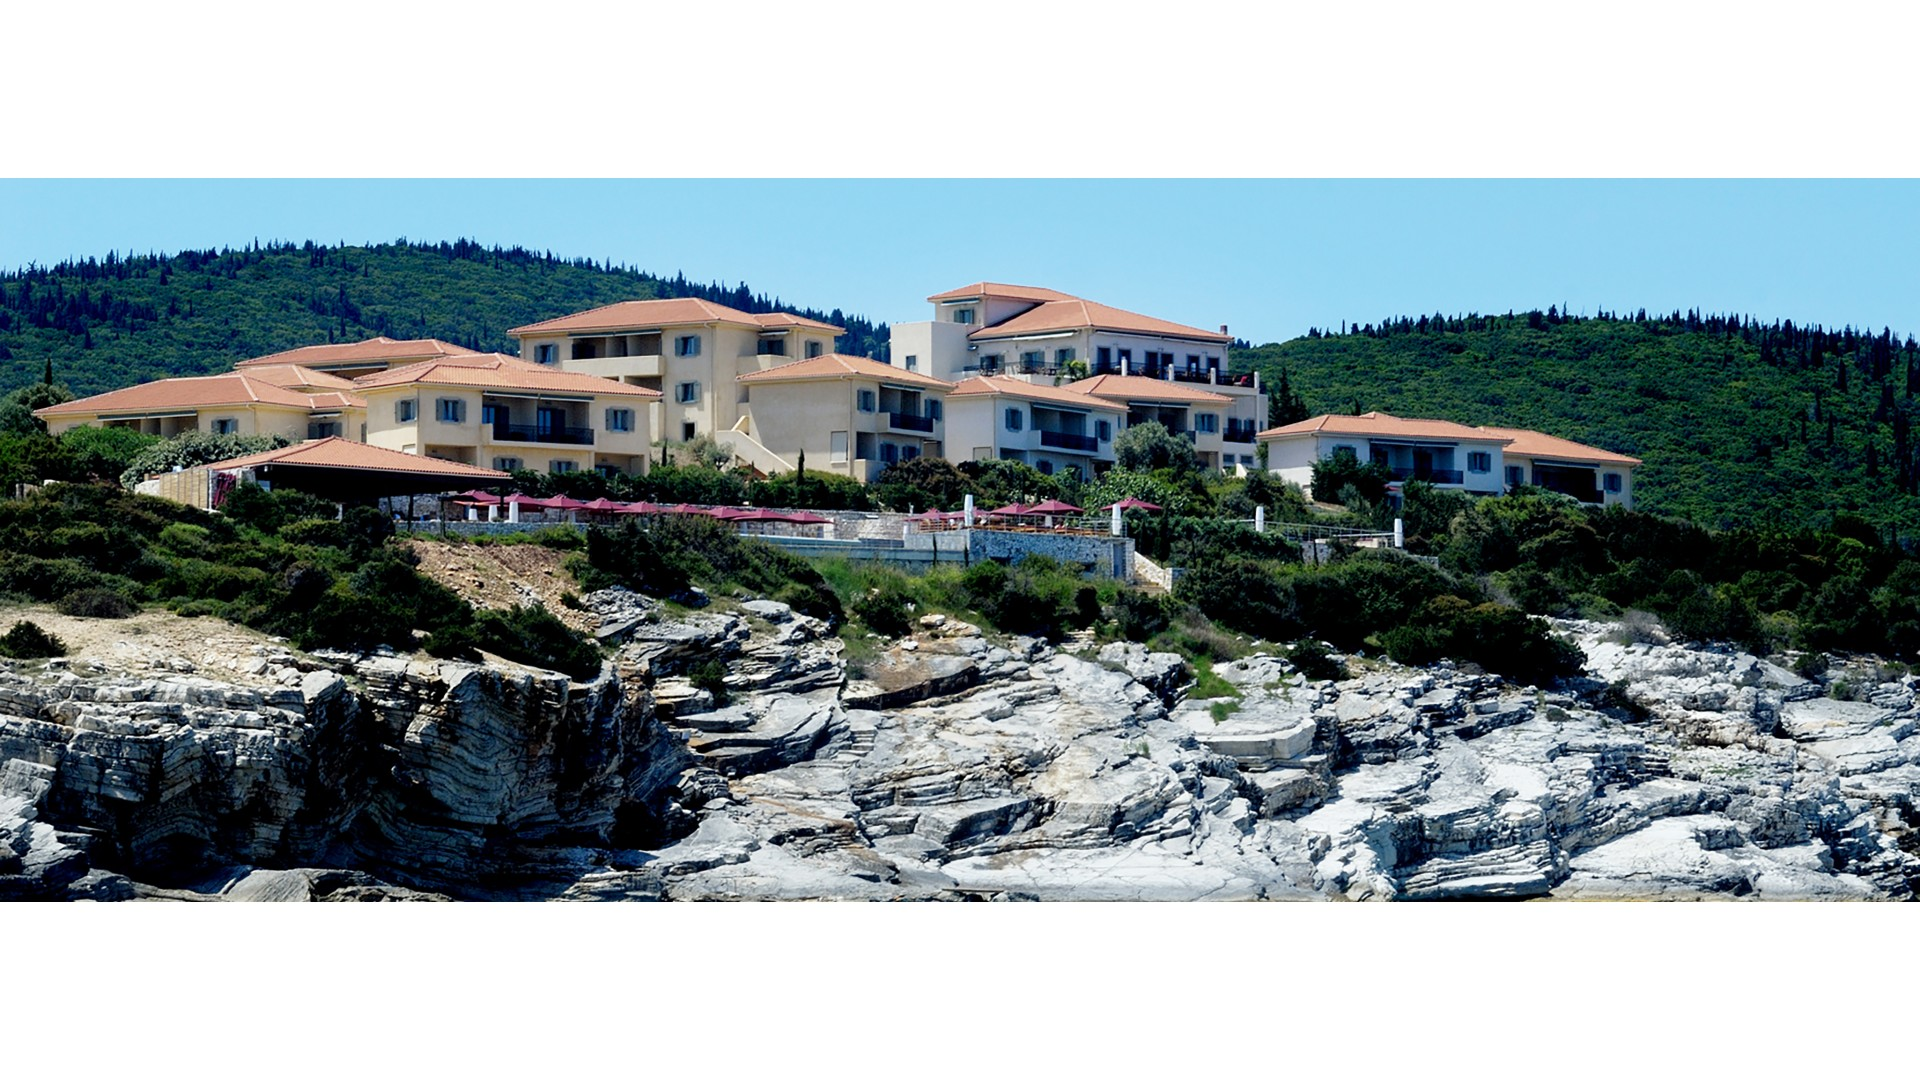 Emelisse Hotel Ithaca Kefalonia Ithaca Smith Hotels - Huge boulder narrowly missed house in italy